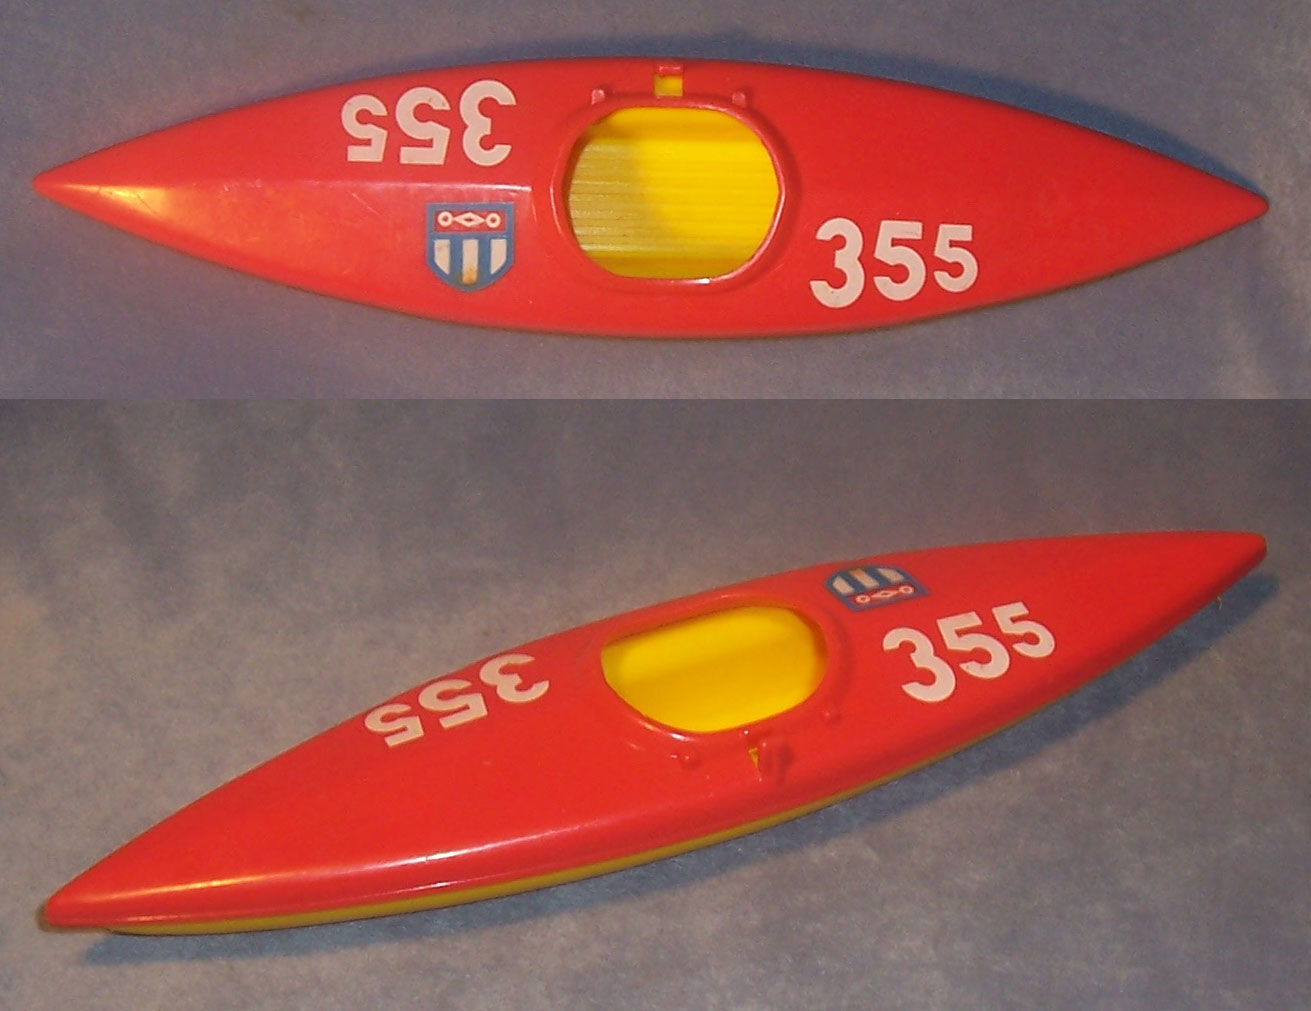 This Old Toy's Fisher-Price Adventure Series ID: Vehicles - Small Boats